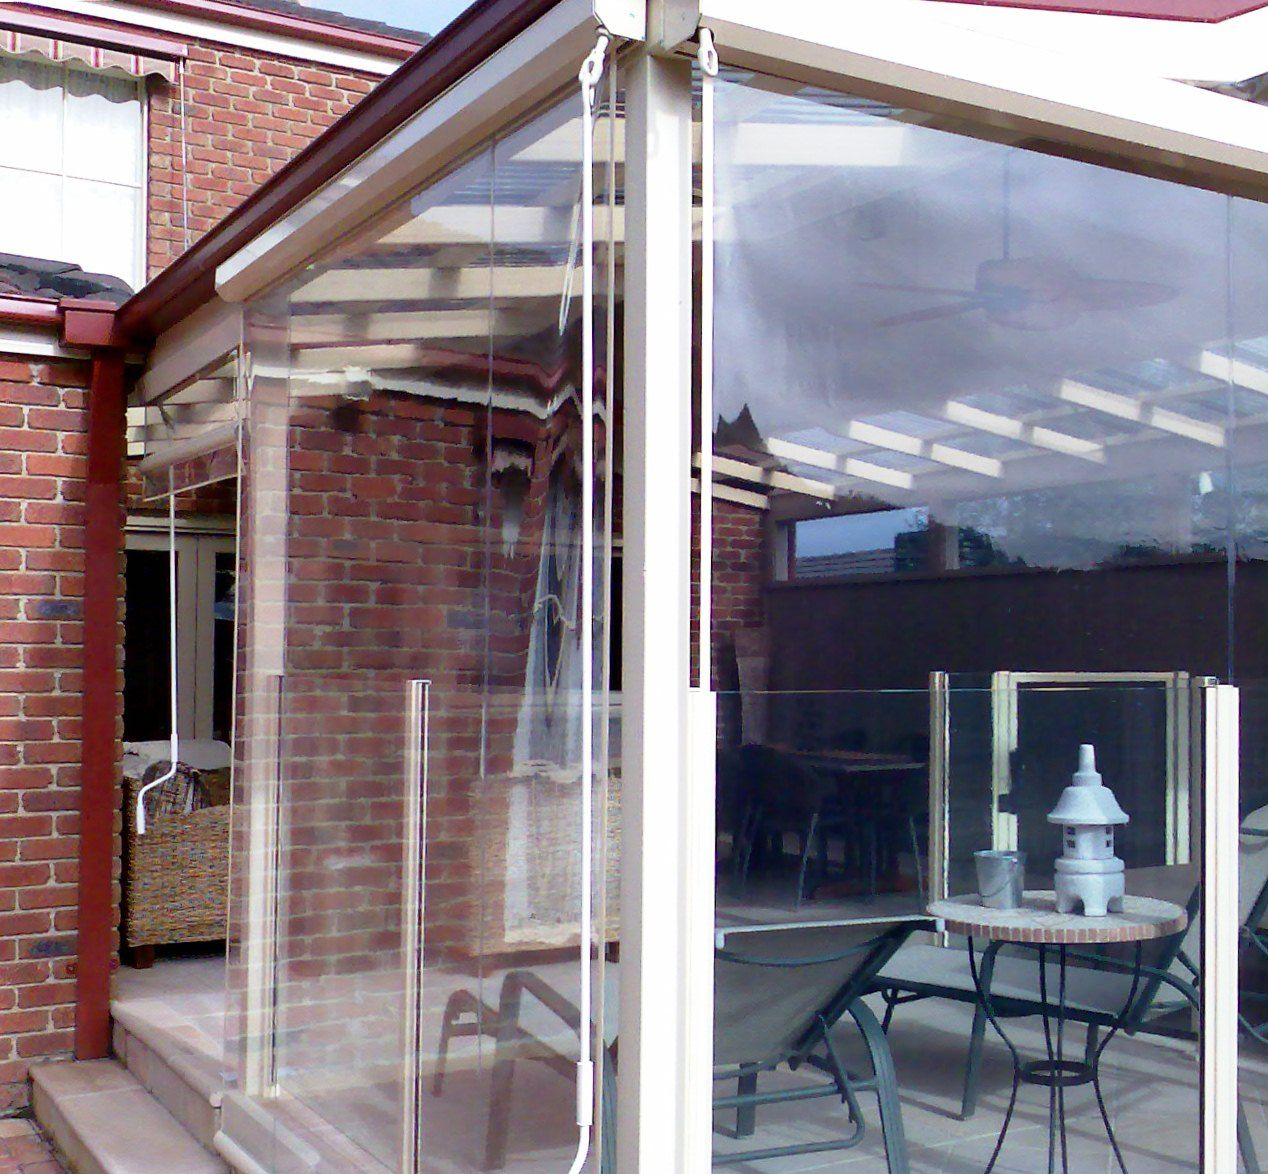 Contact Bayside Awnings Centre For Very Competitive Prices On External All Weather Solutions Like Sun Shades Outdoor Blinds And